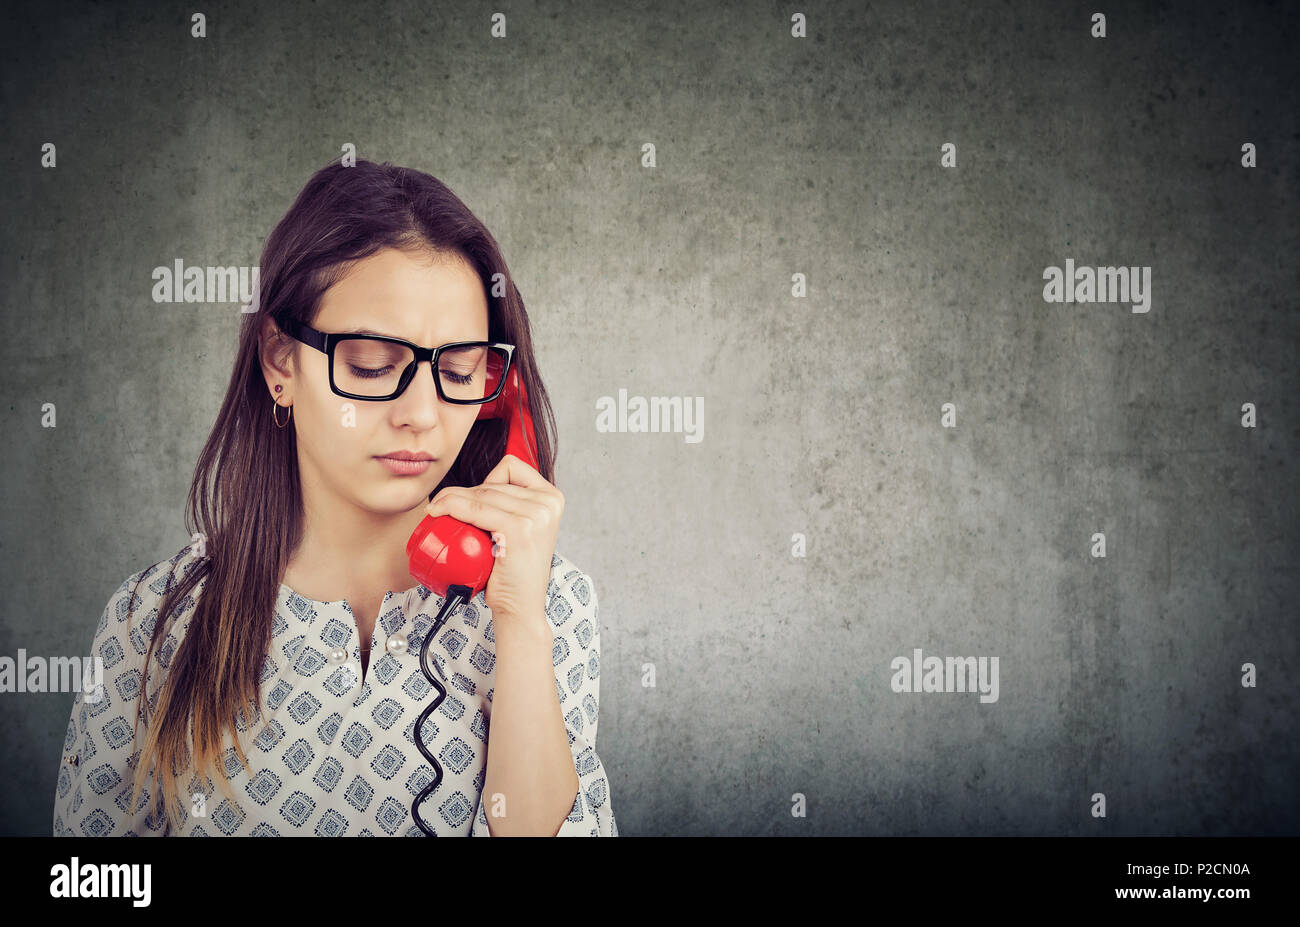 Pretty girl in glasses looking down in sadness while speaking on phone and having problems - Stock Image